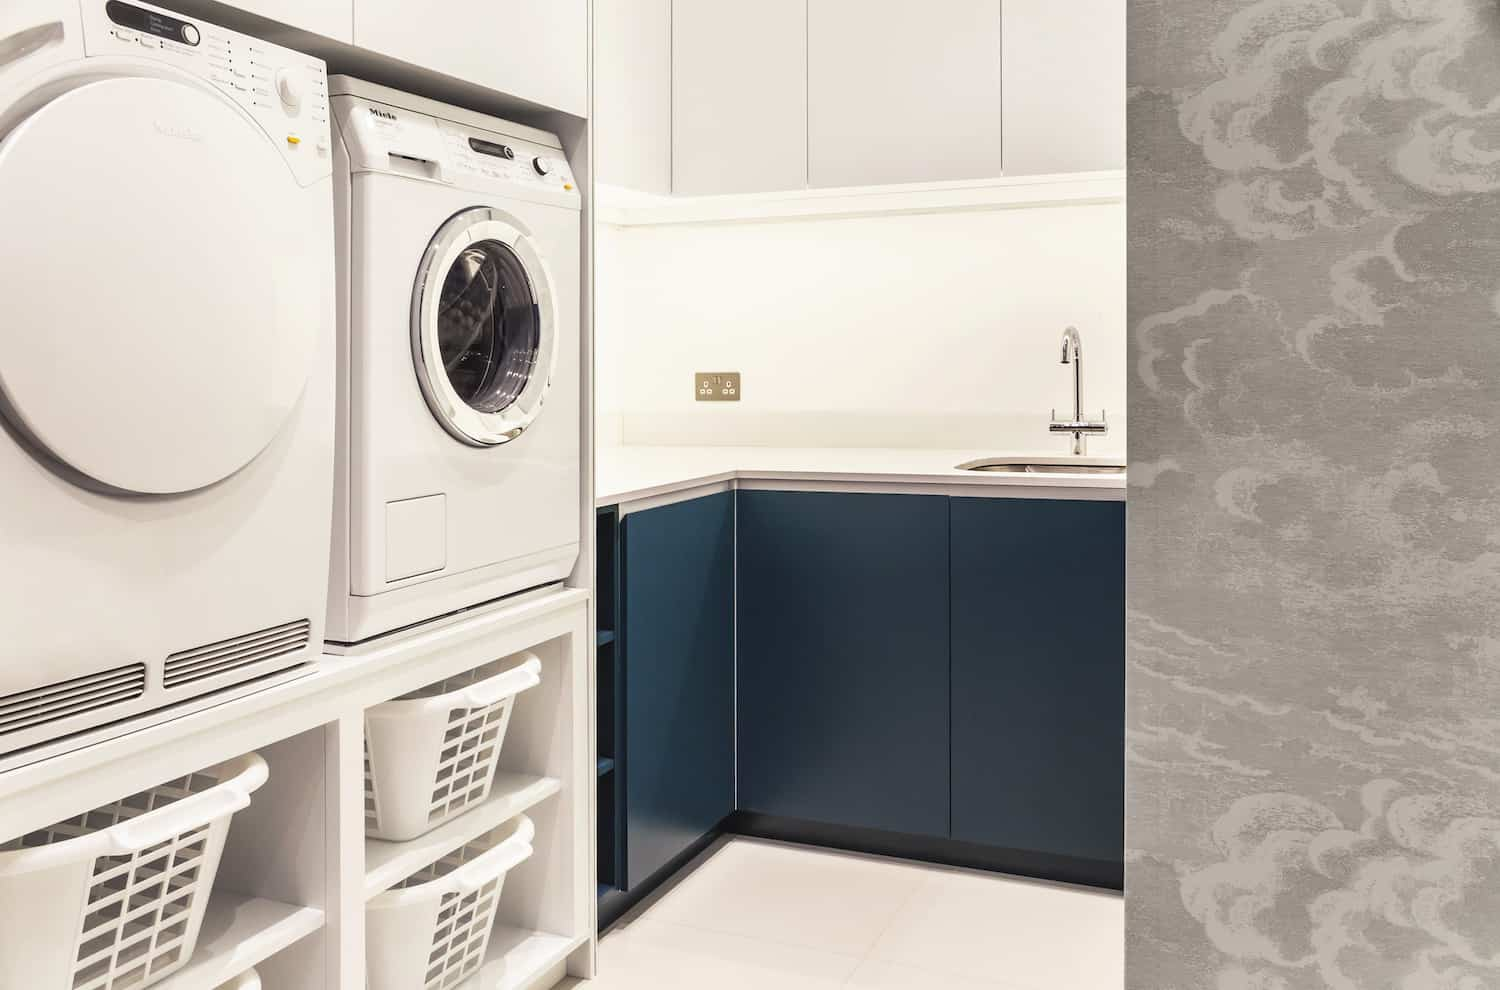 I love this bright, highly functional new laundry room with elevated washing machine and dryer with storage baskets underneath. There's counterspace, a sink and upper cabinets. This laundry room is more than adequate for a family.